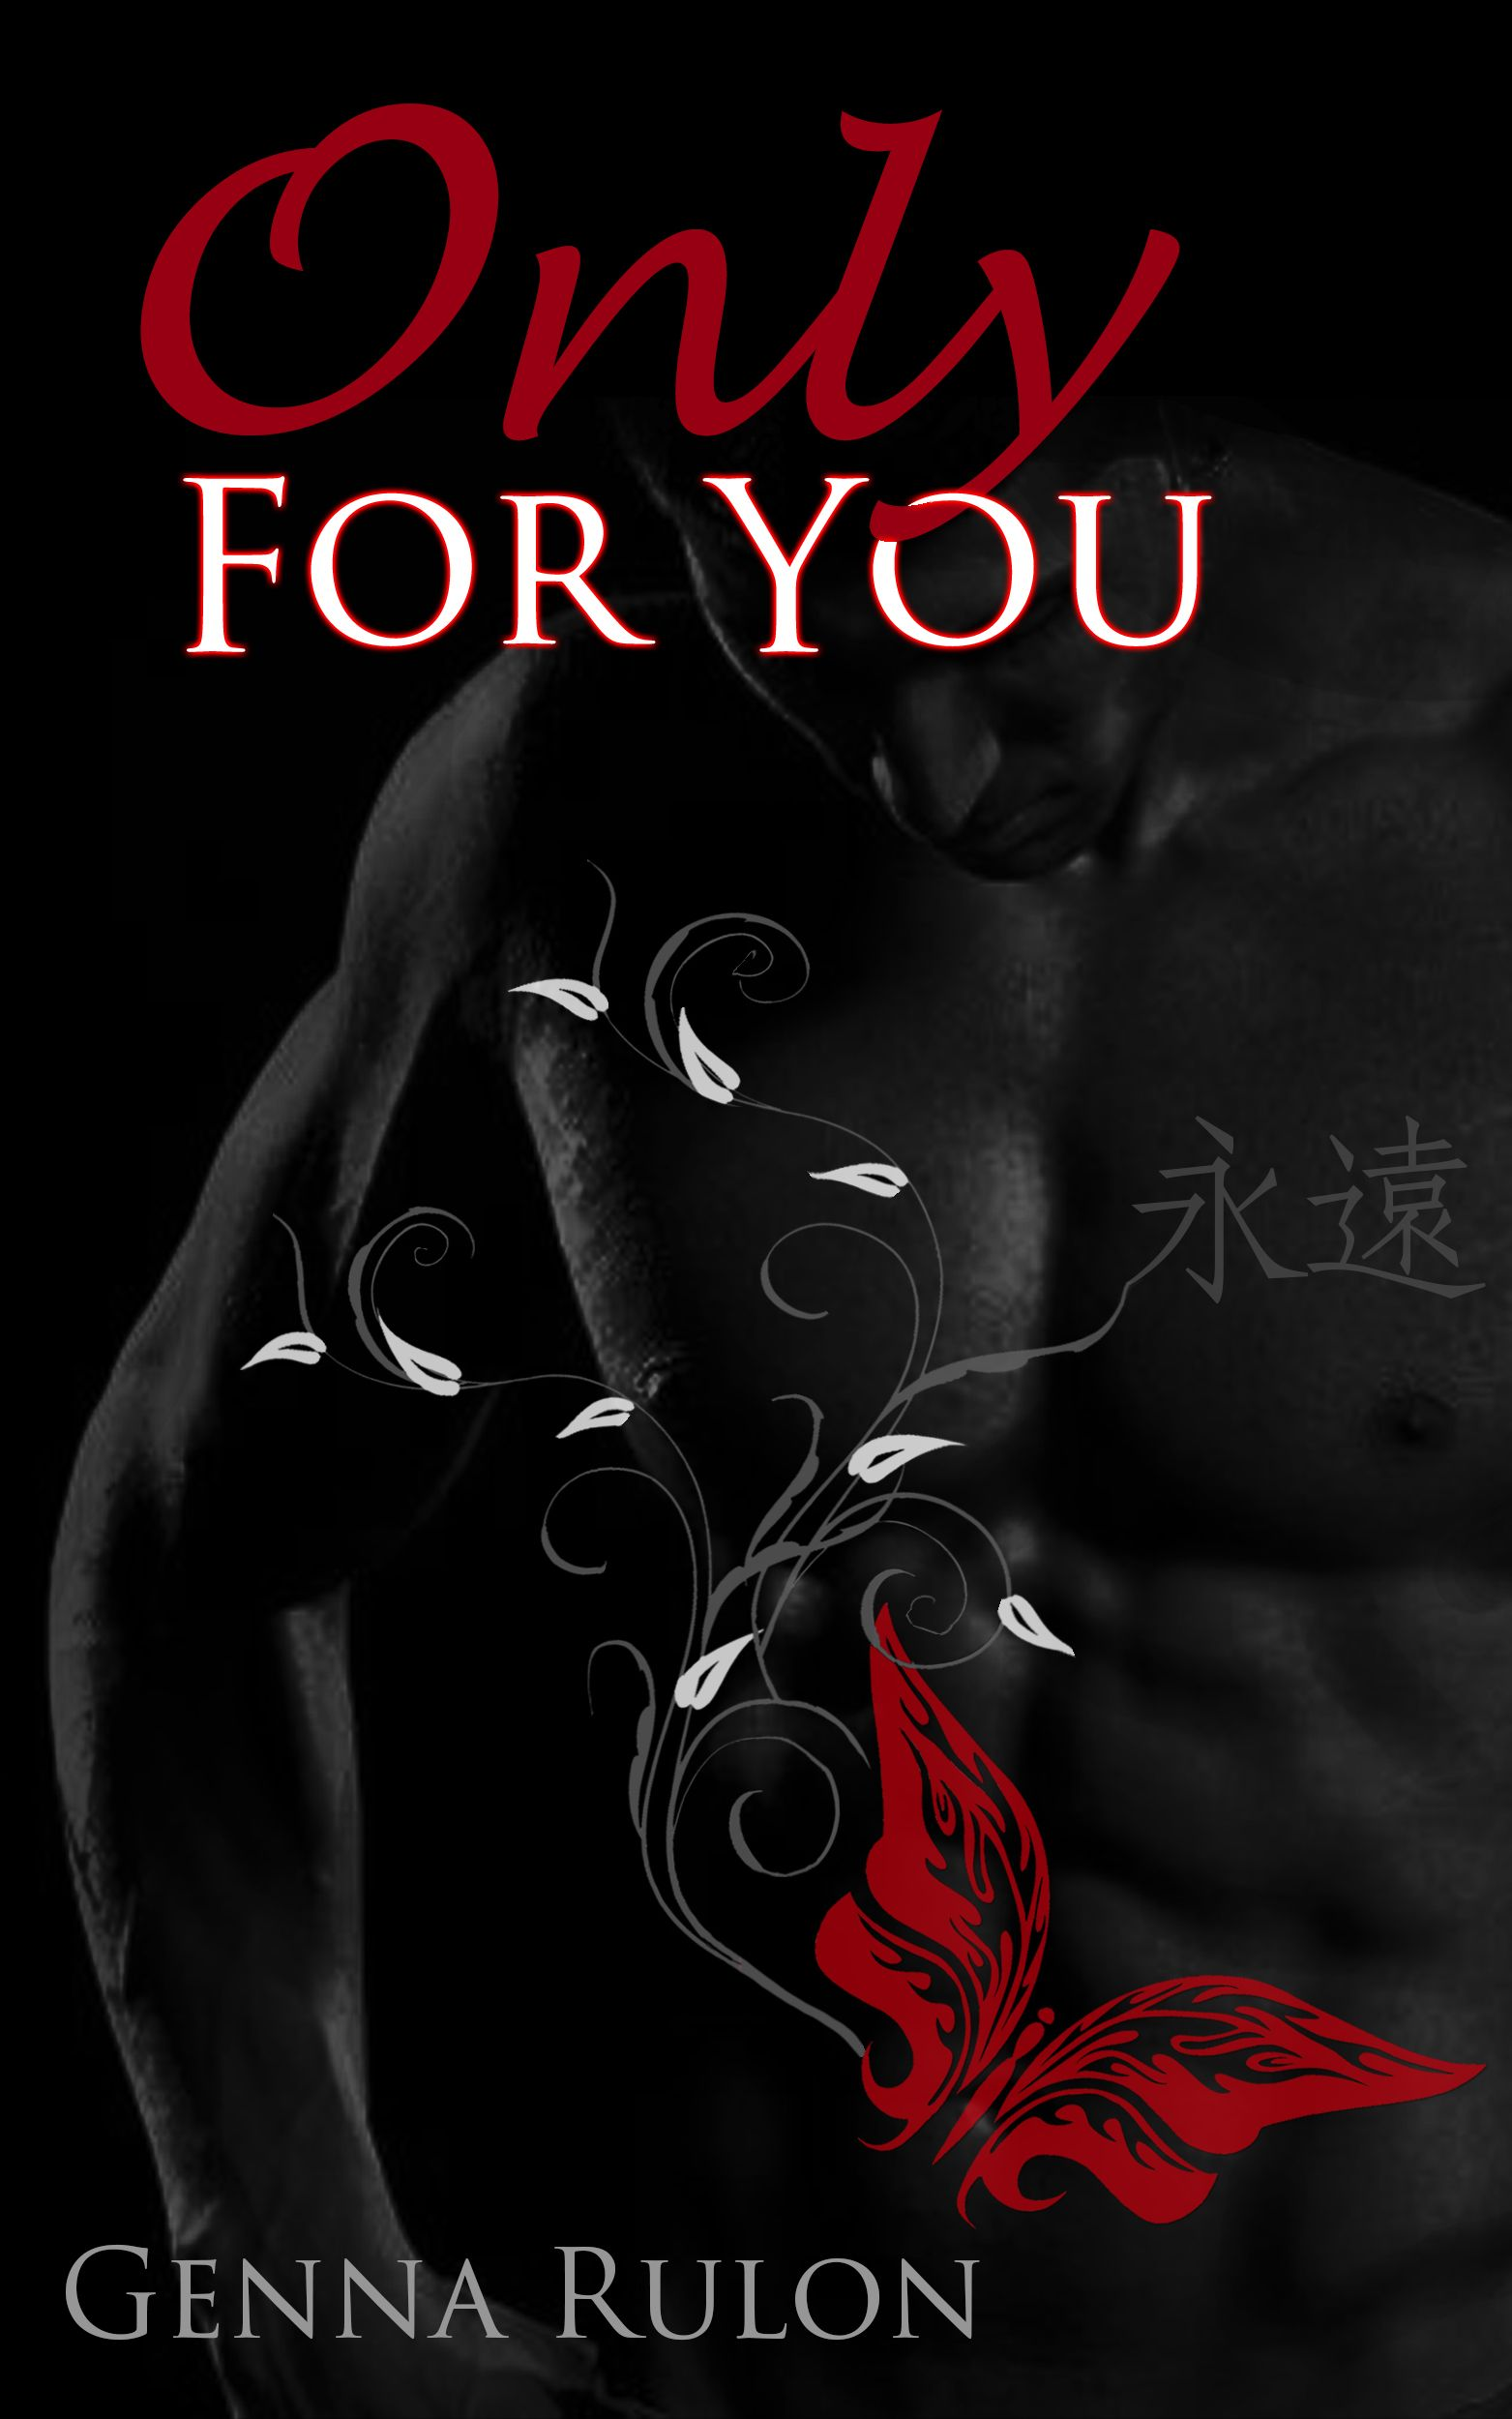 Pin by Amber Eatherton on BOOKS!!!! Free books to read